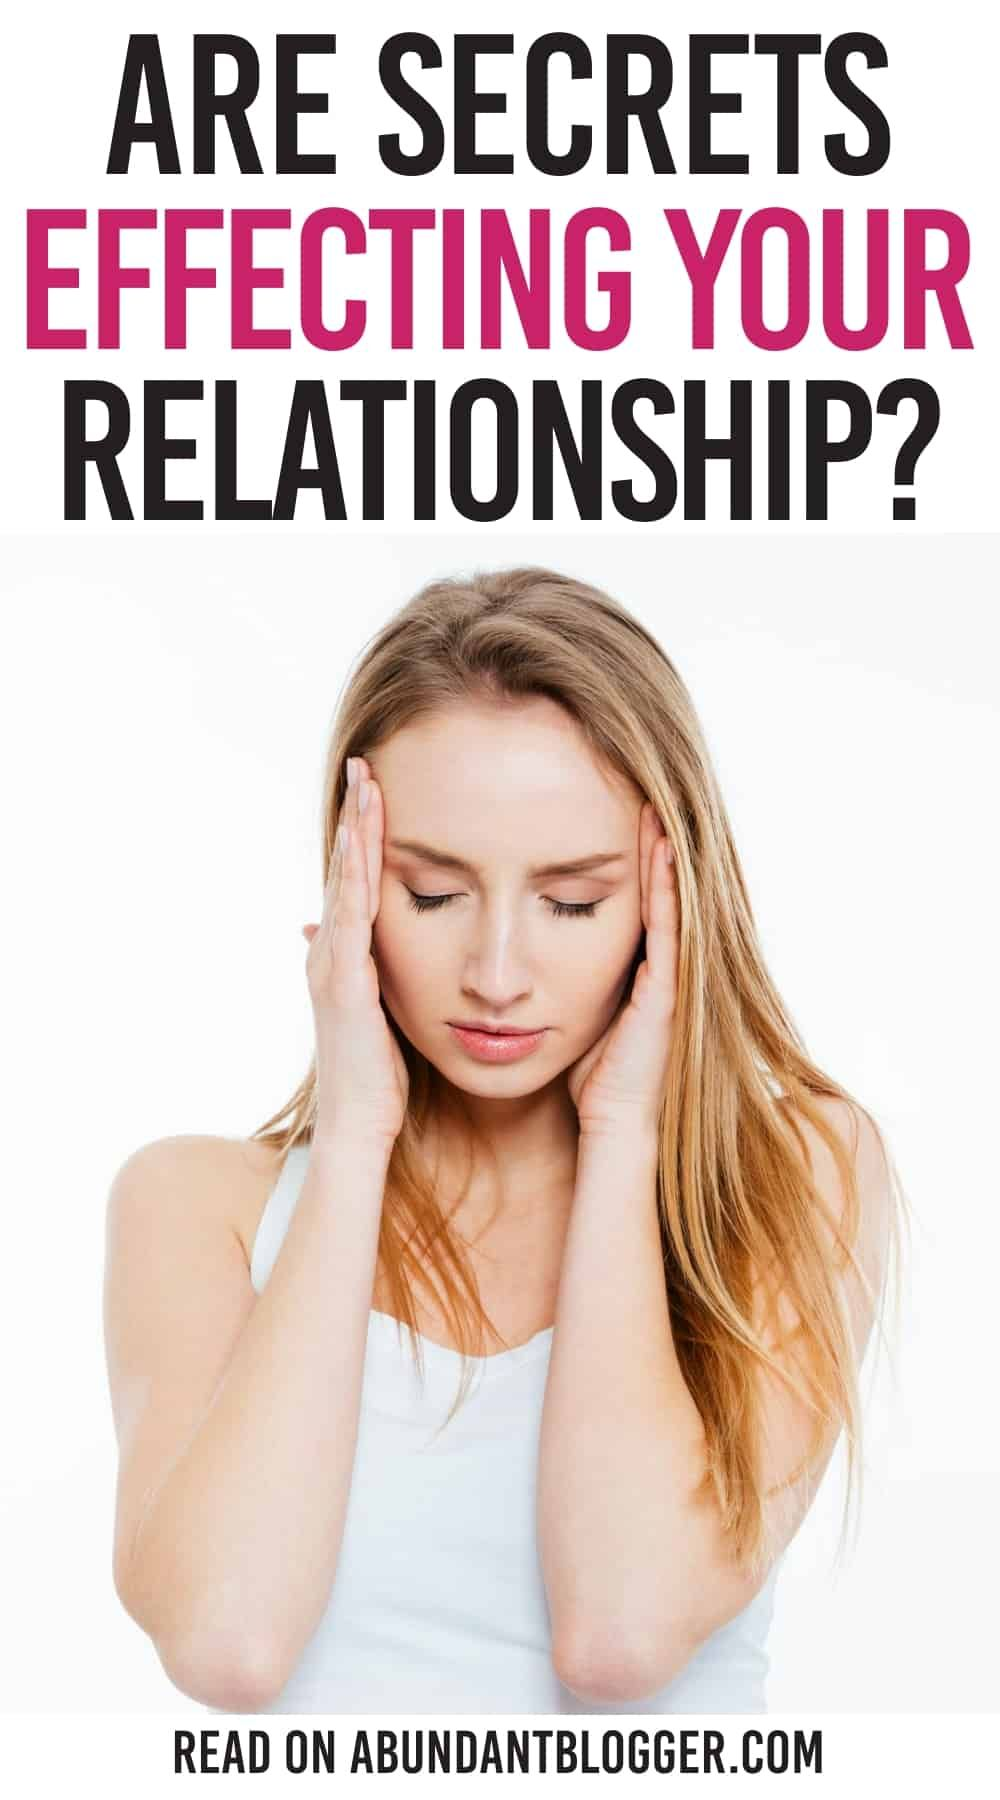 Is It Ok To Keep Secrets In A Relationship? Relationship